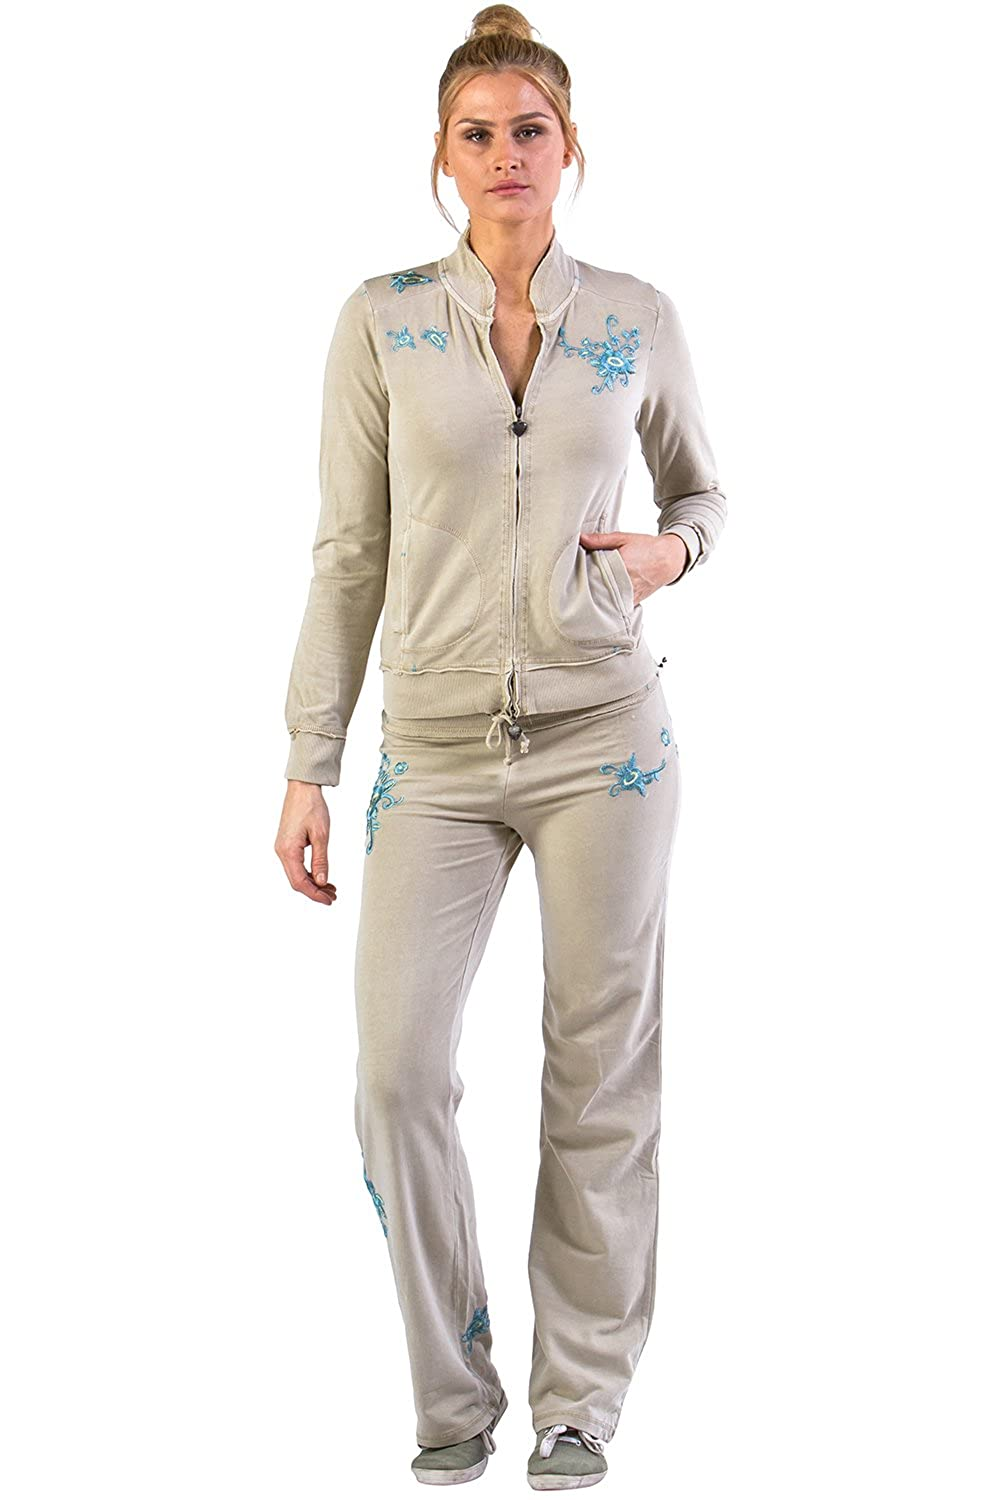 VERTIGO PARIS Vintage Women's Wash Emroidered Lounge Tracksuit Jog Set VT13319